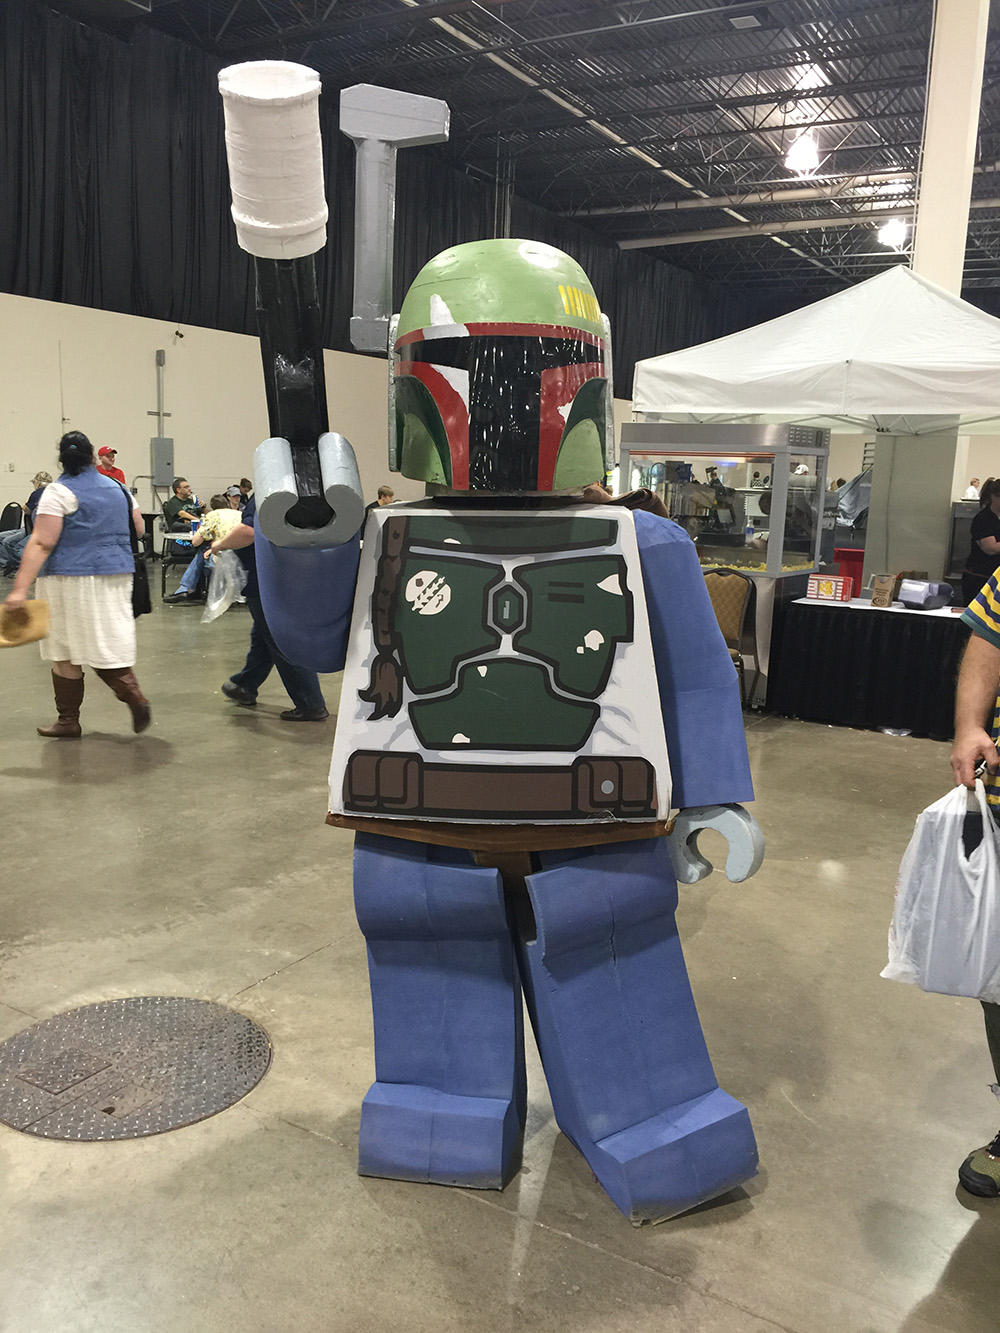 MCCC 2015: Cosplay and Cool Things Gallery | SideQuesting